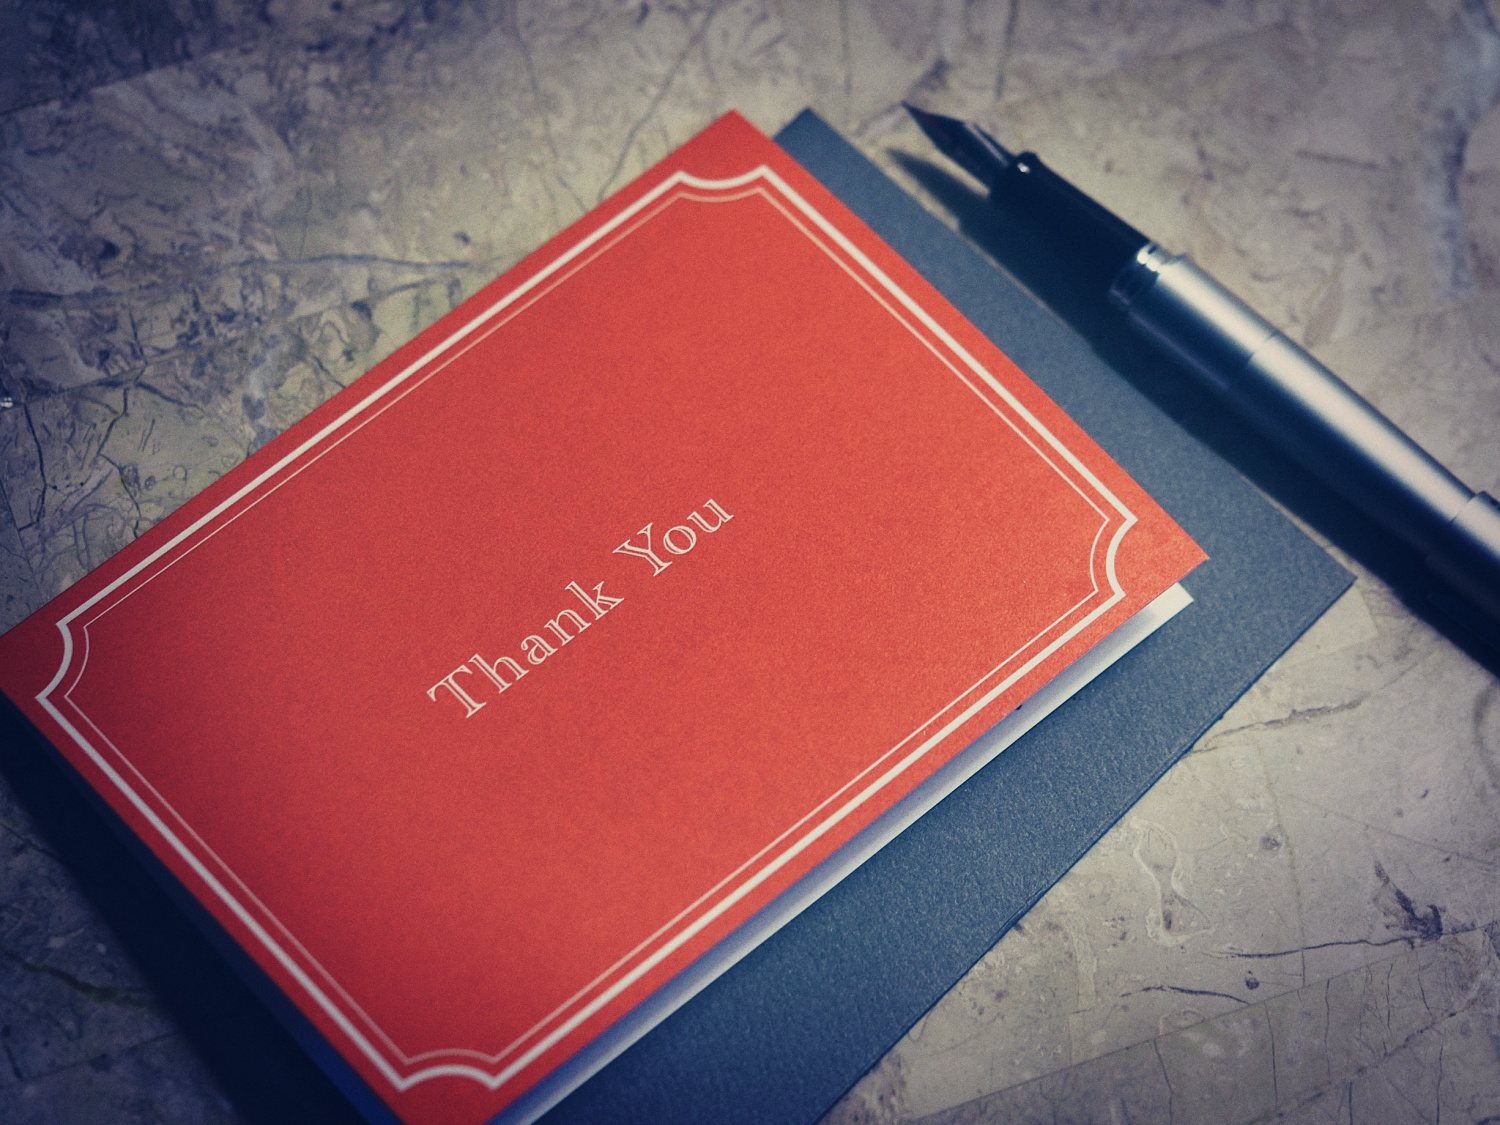 6 Creative Ways To Say Thank You To Meeting Planning Clients For Booking Business With You.